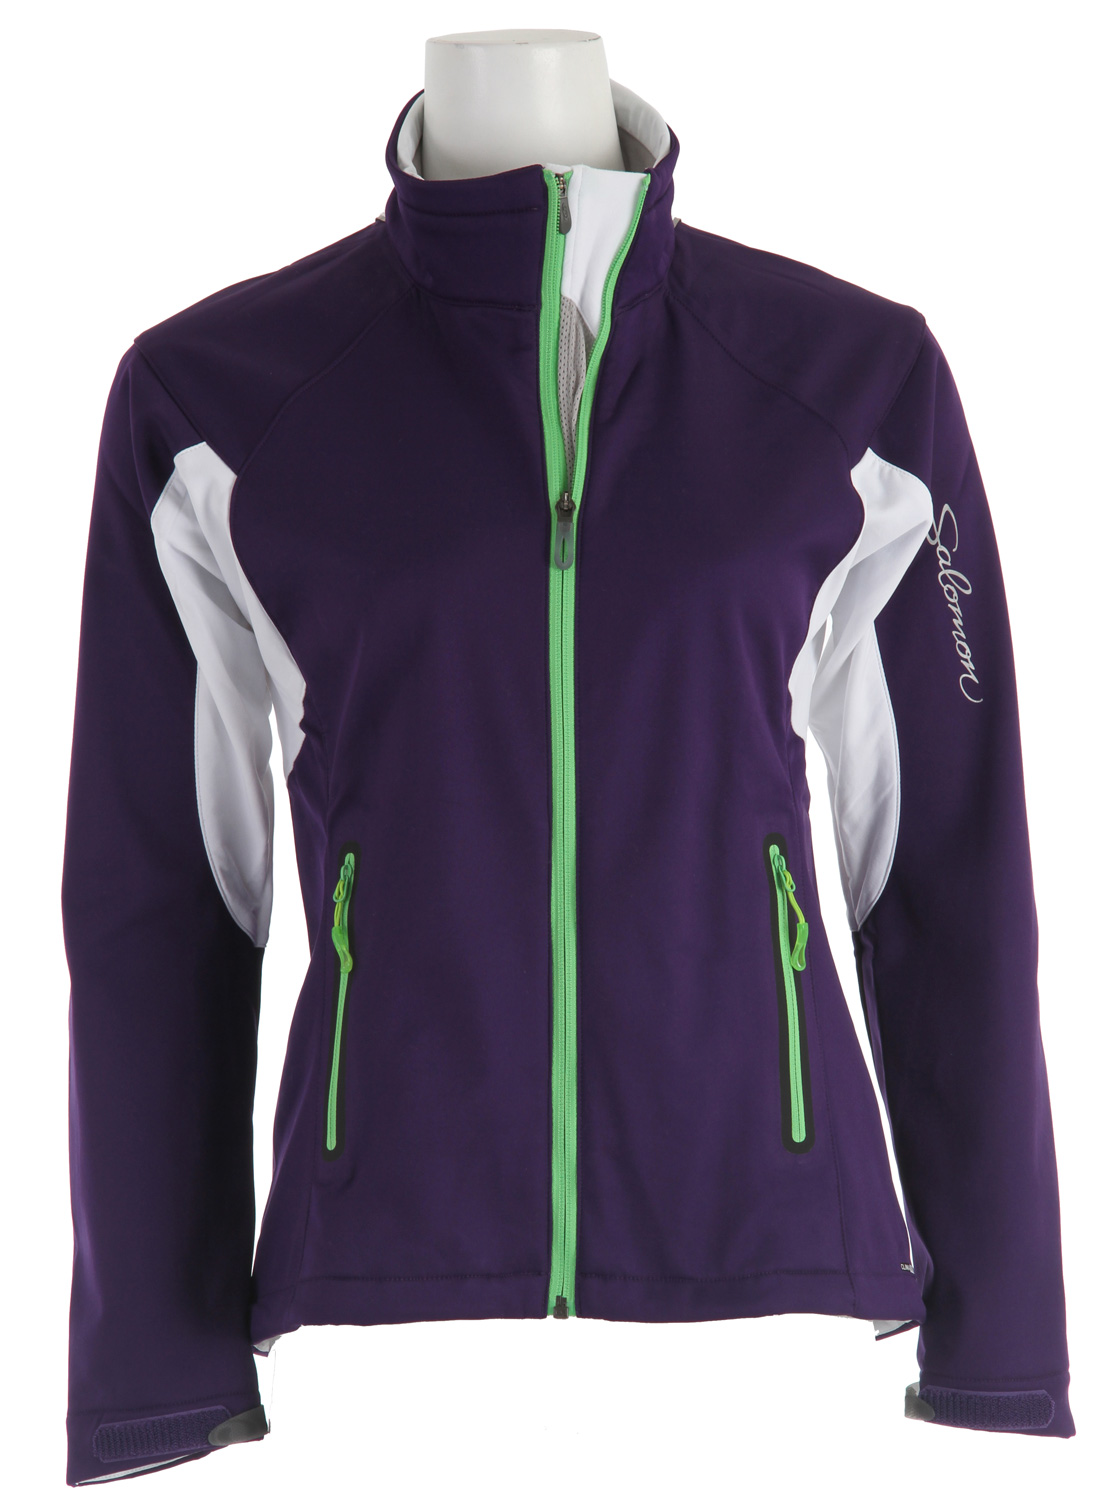 "Ski Smart Skin technology puts complete wind protection with a more breathable SOFTSHELL on the front of this jacket. Ideal for moderate aerobic activity in cold, windy weather.Key Features of the Salomon Active III Softshell Ski Jacket: SMART SKIN actiTHERM stretch poly knit climaWIND 3L SOFTSHELL 2 way zipper 3 zipped pockets Cuff Tabs Reflective branding front & back Body & sleeve hem adjustment Center front smart venting Off-centered zip Thumb loop Dropped back hem Active fit Center Back: 26.4"" - $119.95"